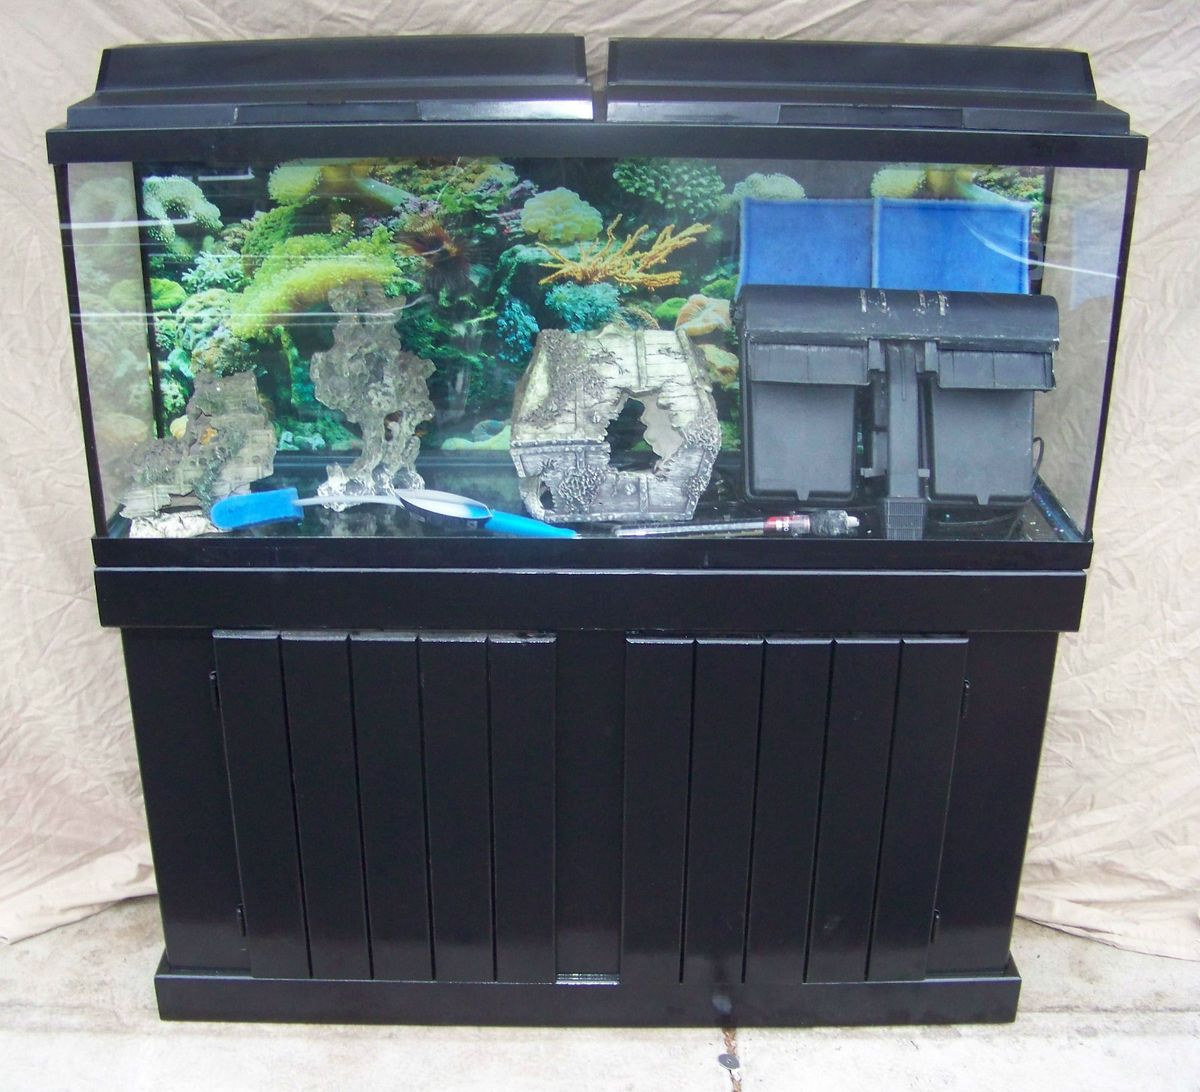 55 gallon fish tank and stand complete 55 gallon fish for 55 gallon fish tank petco